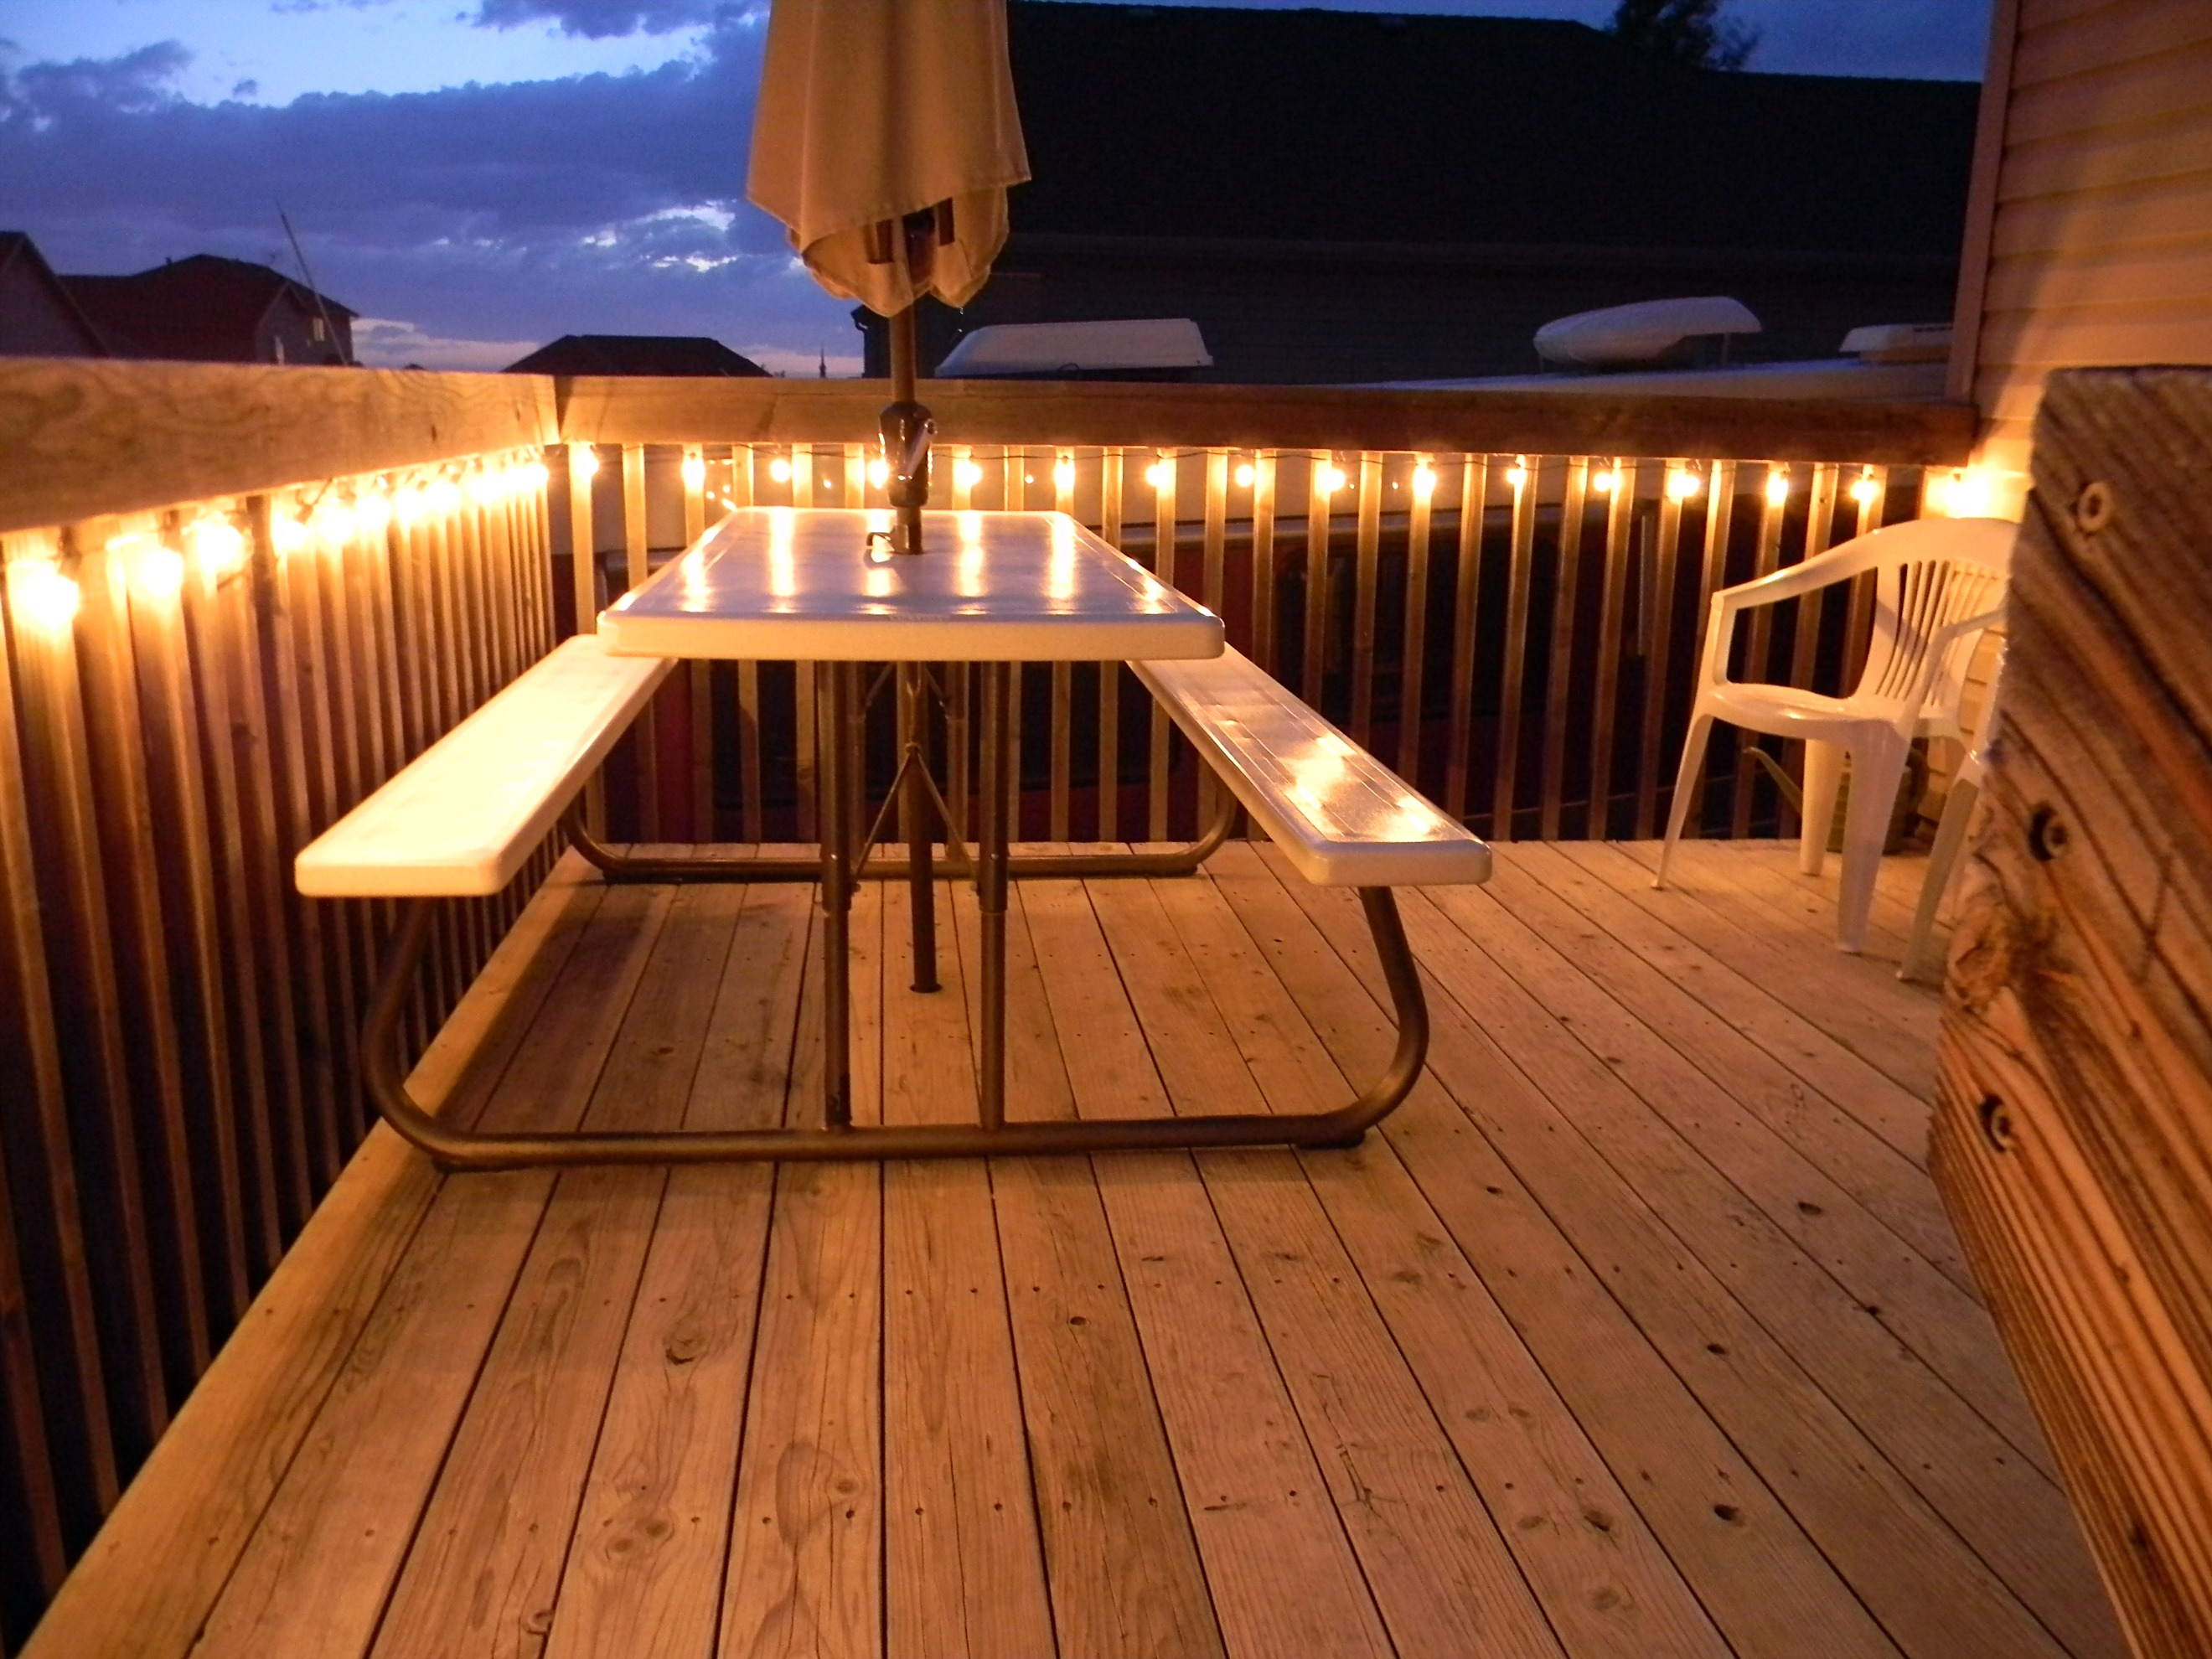 outside deck lighting. deck lighting outside g